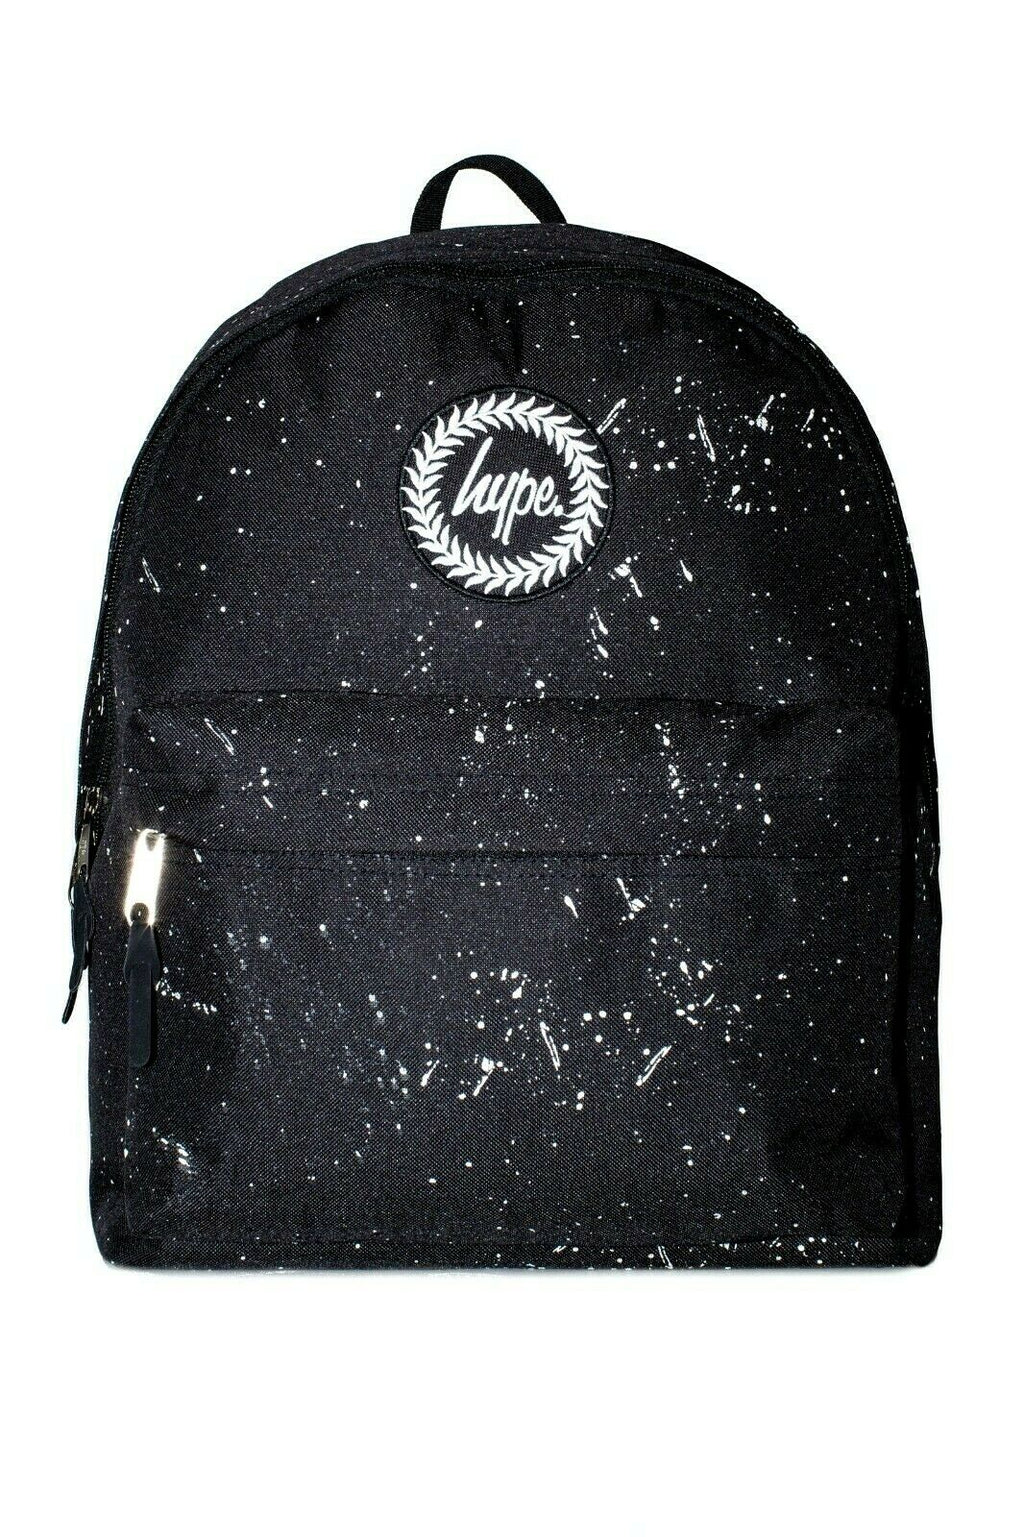 HYPE REFLECTIVE SPECKLE BACKPACK RUCKSACK BAG - BLACK